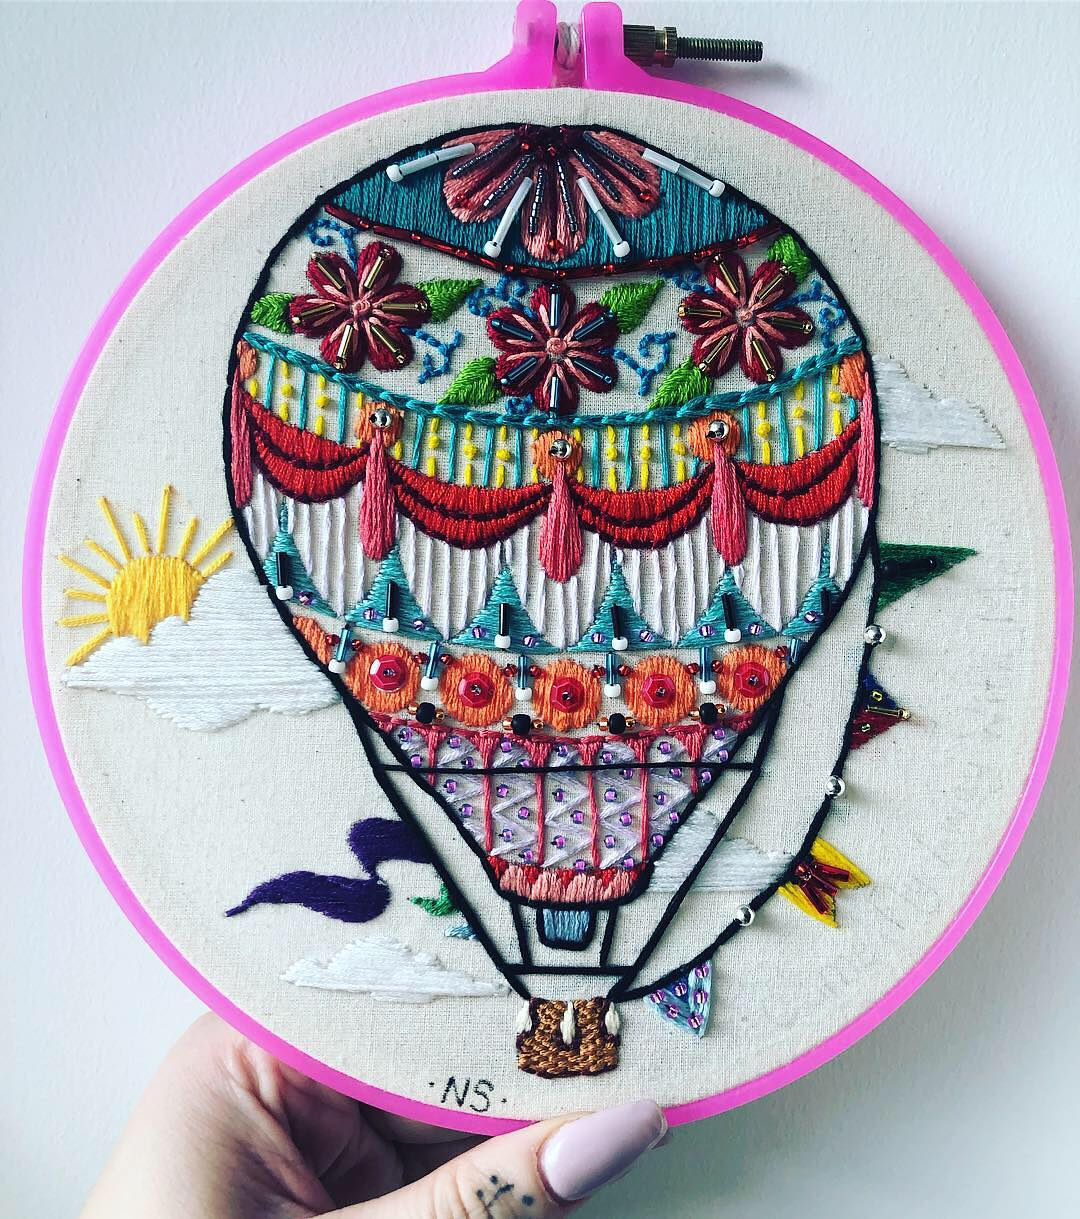 Embroidery by Natalie Sedgewick